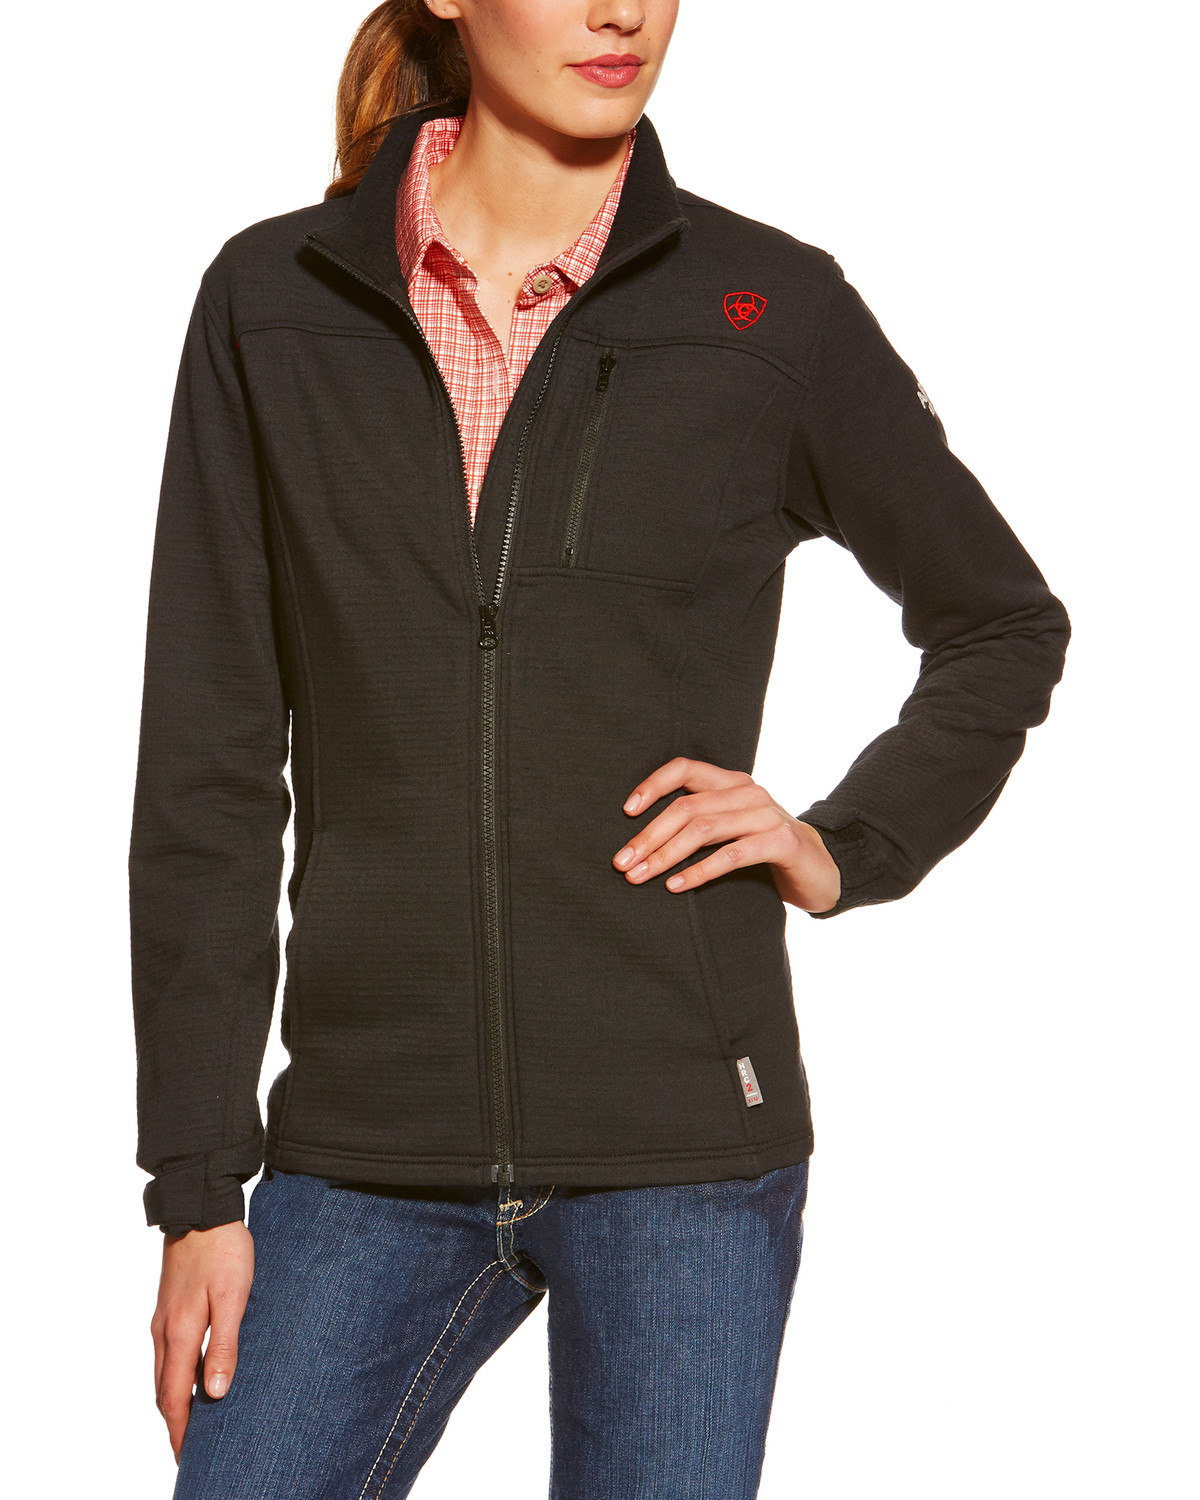 country jacket threshold lapper womenswear womens jackets quilted s black international sub barn barns trim barbour coats width women outdoor height and